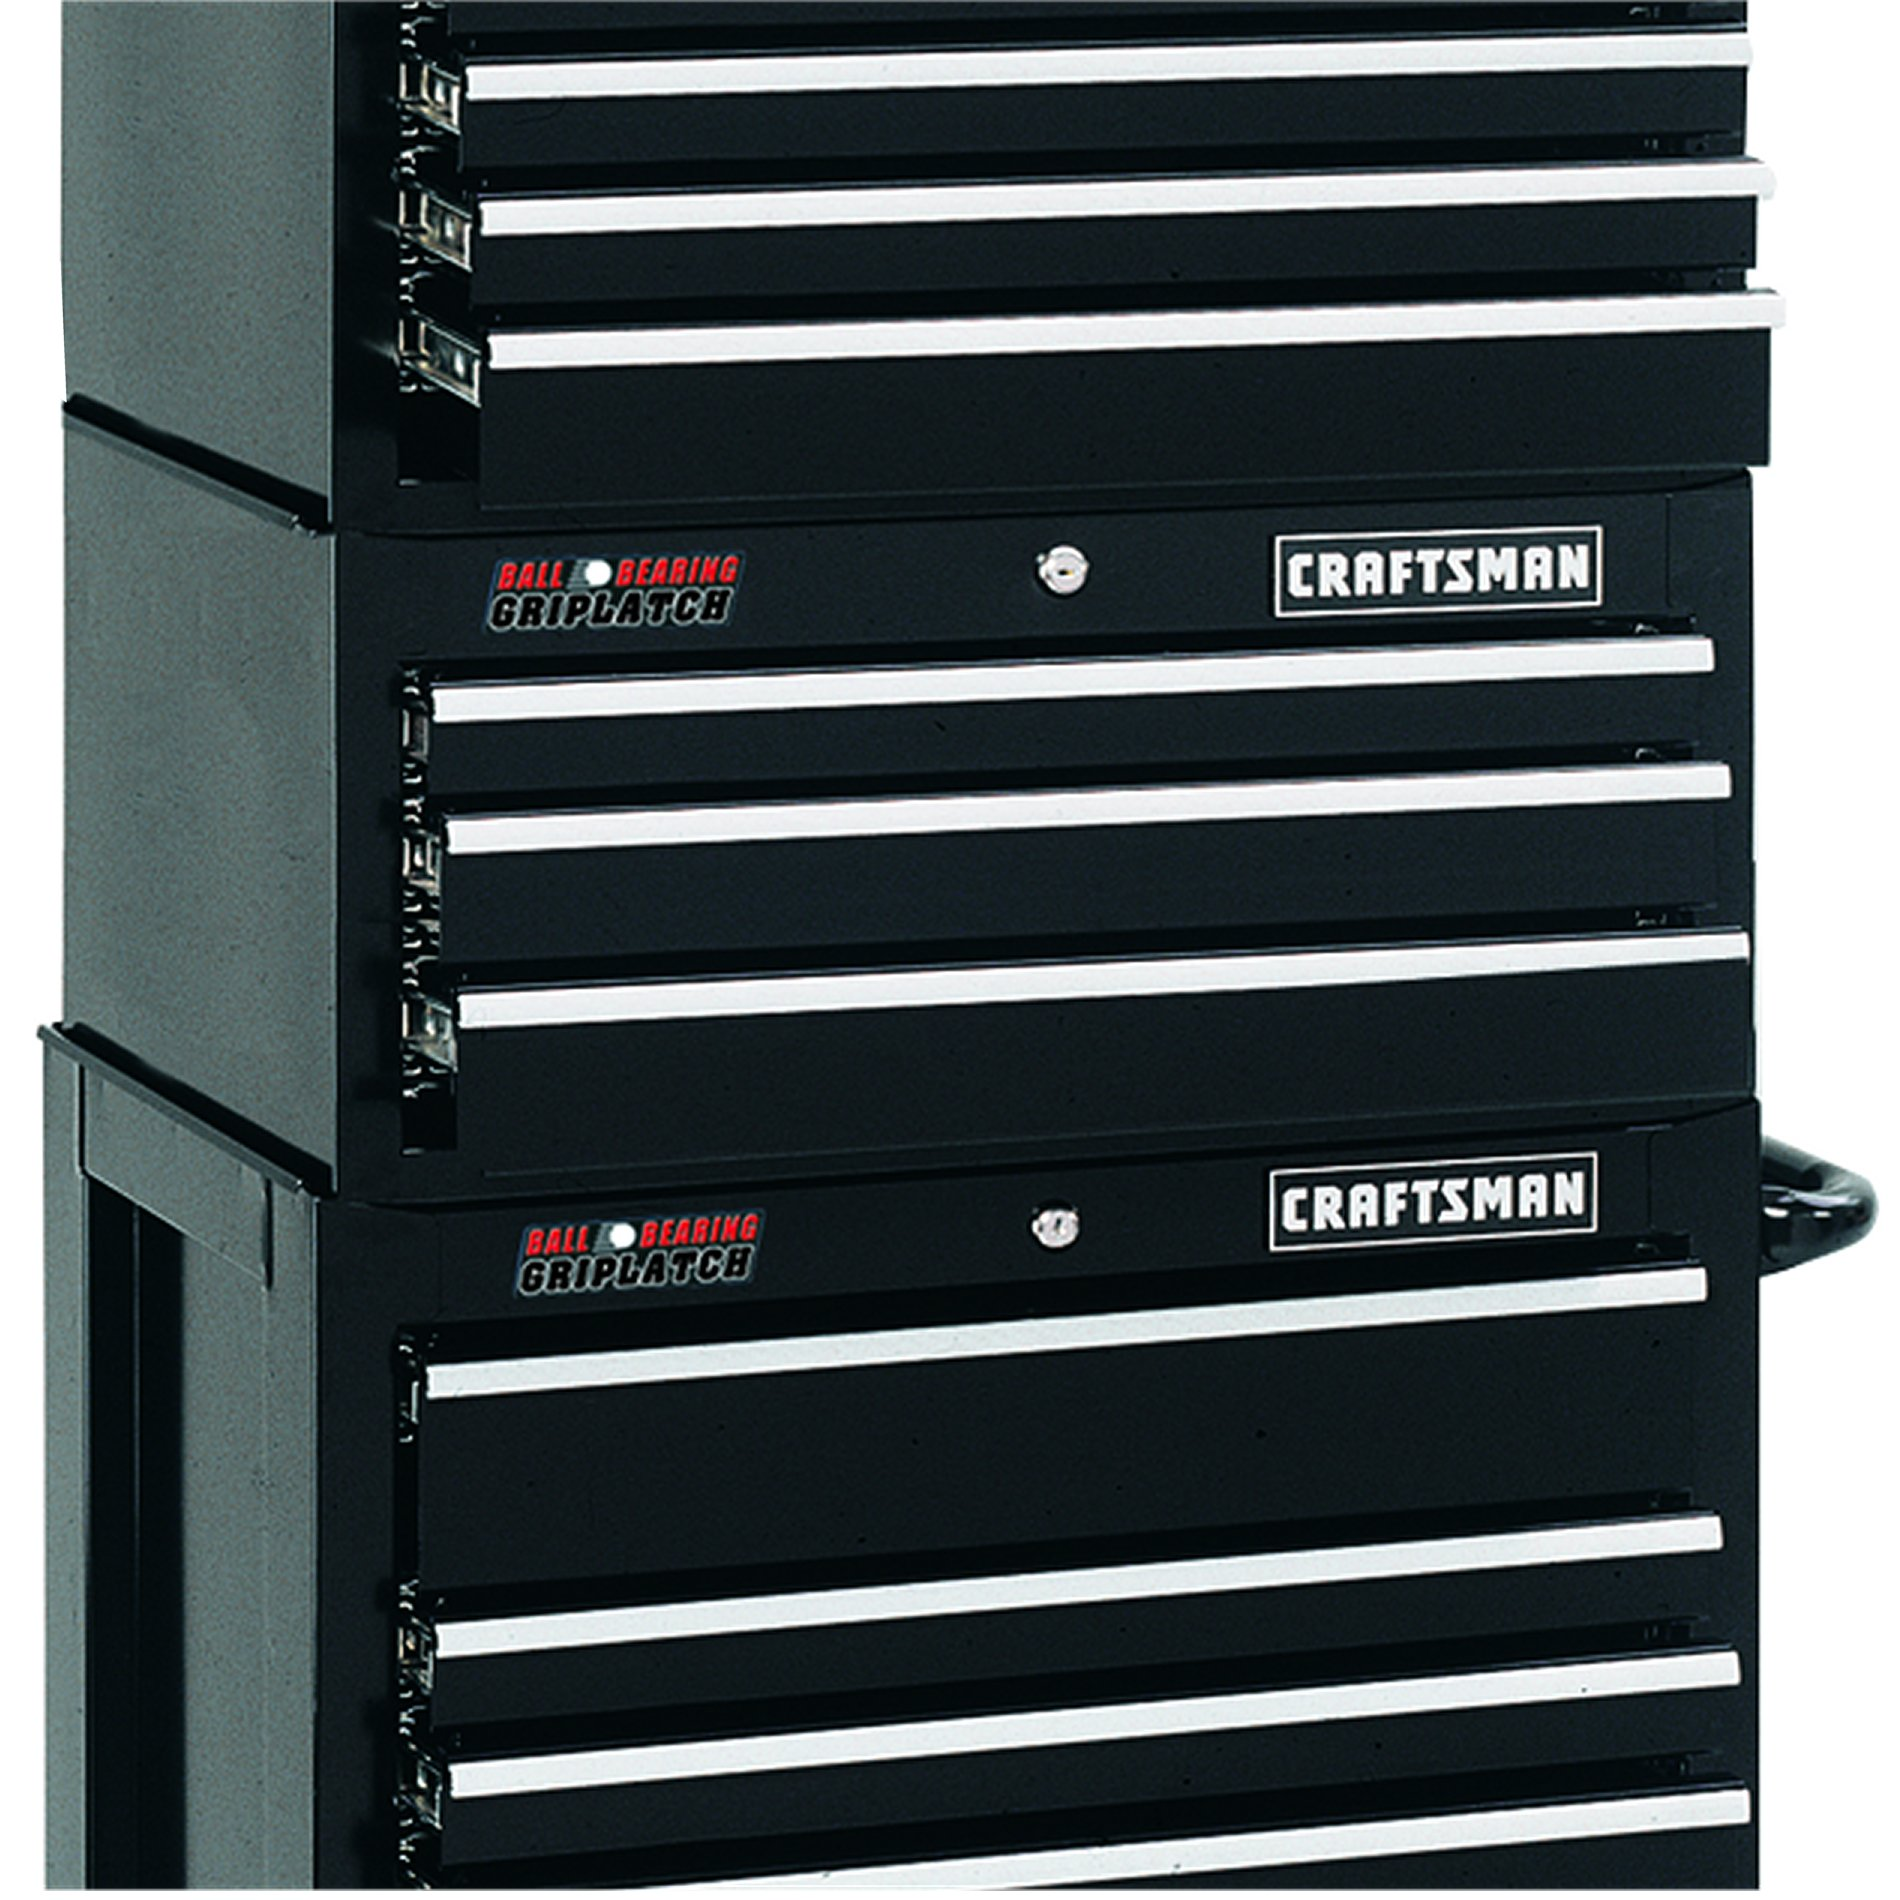 "Craftsman 26"" Wide 3-Drawer Ball-Bearing GRIPLATCH® Middle Chest - Black"